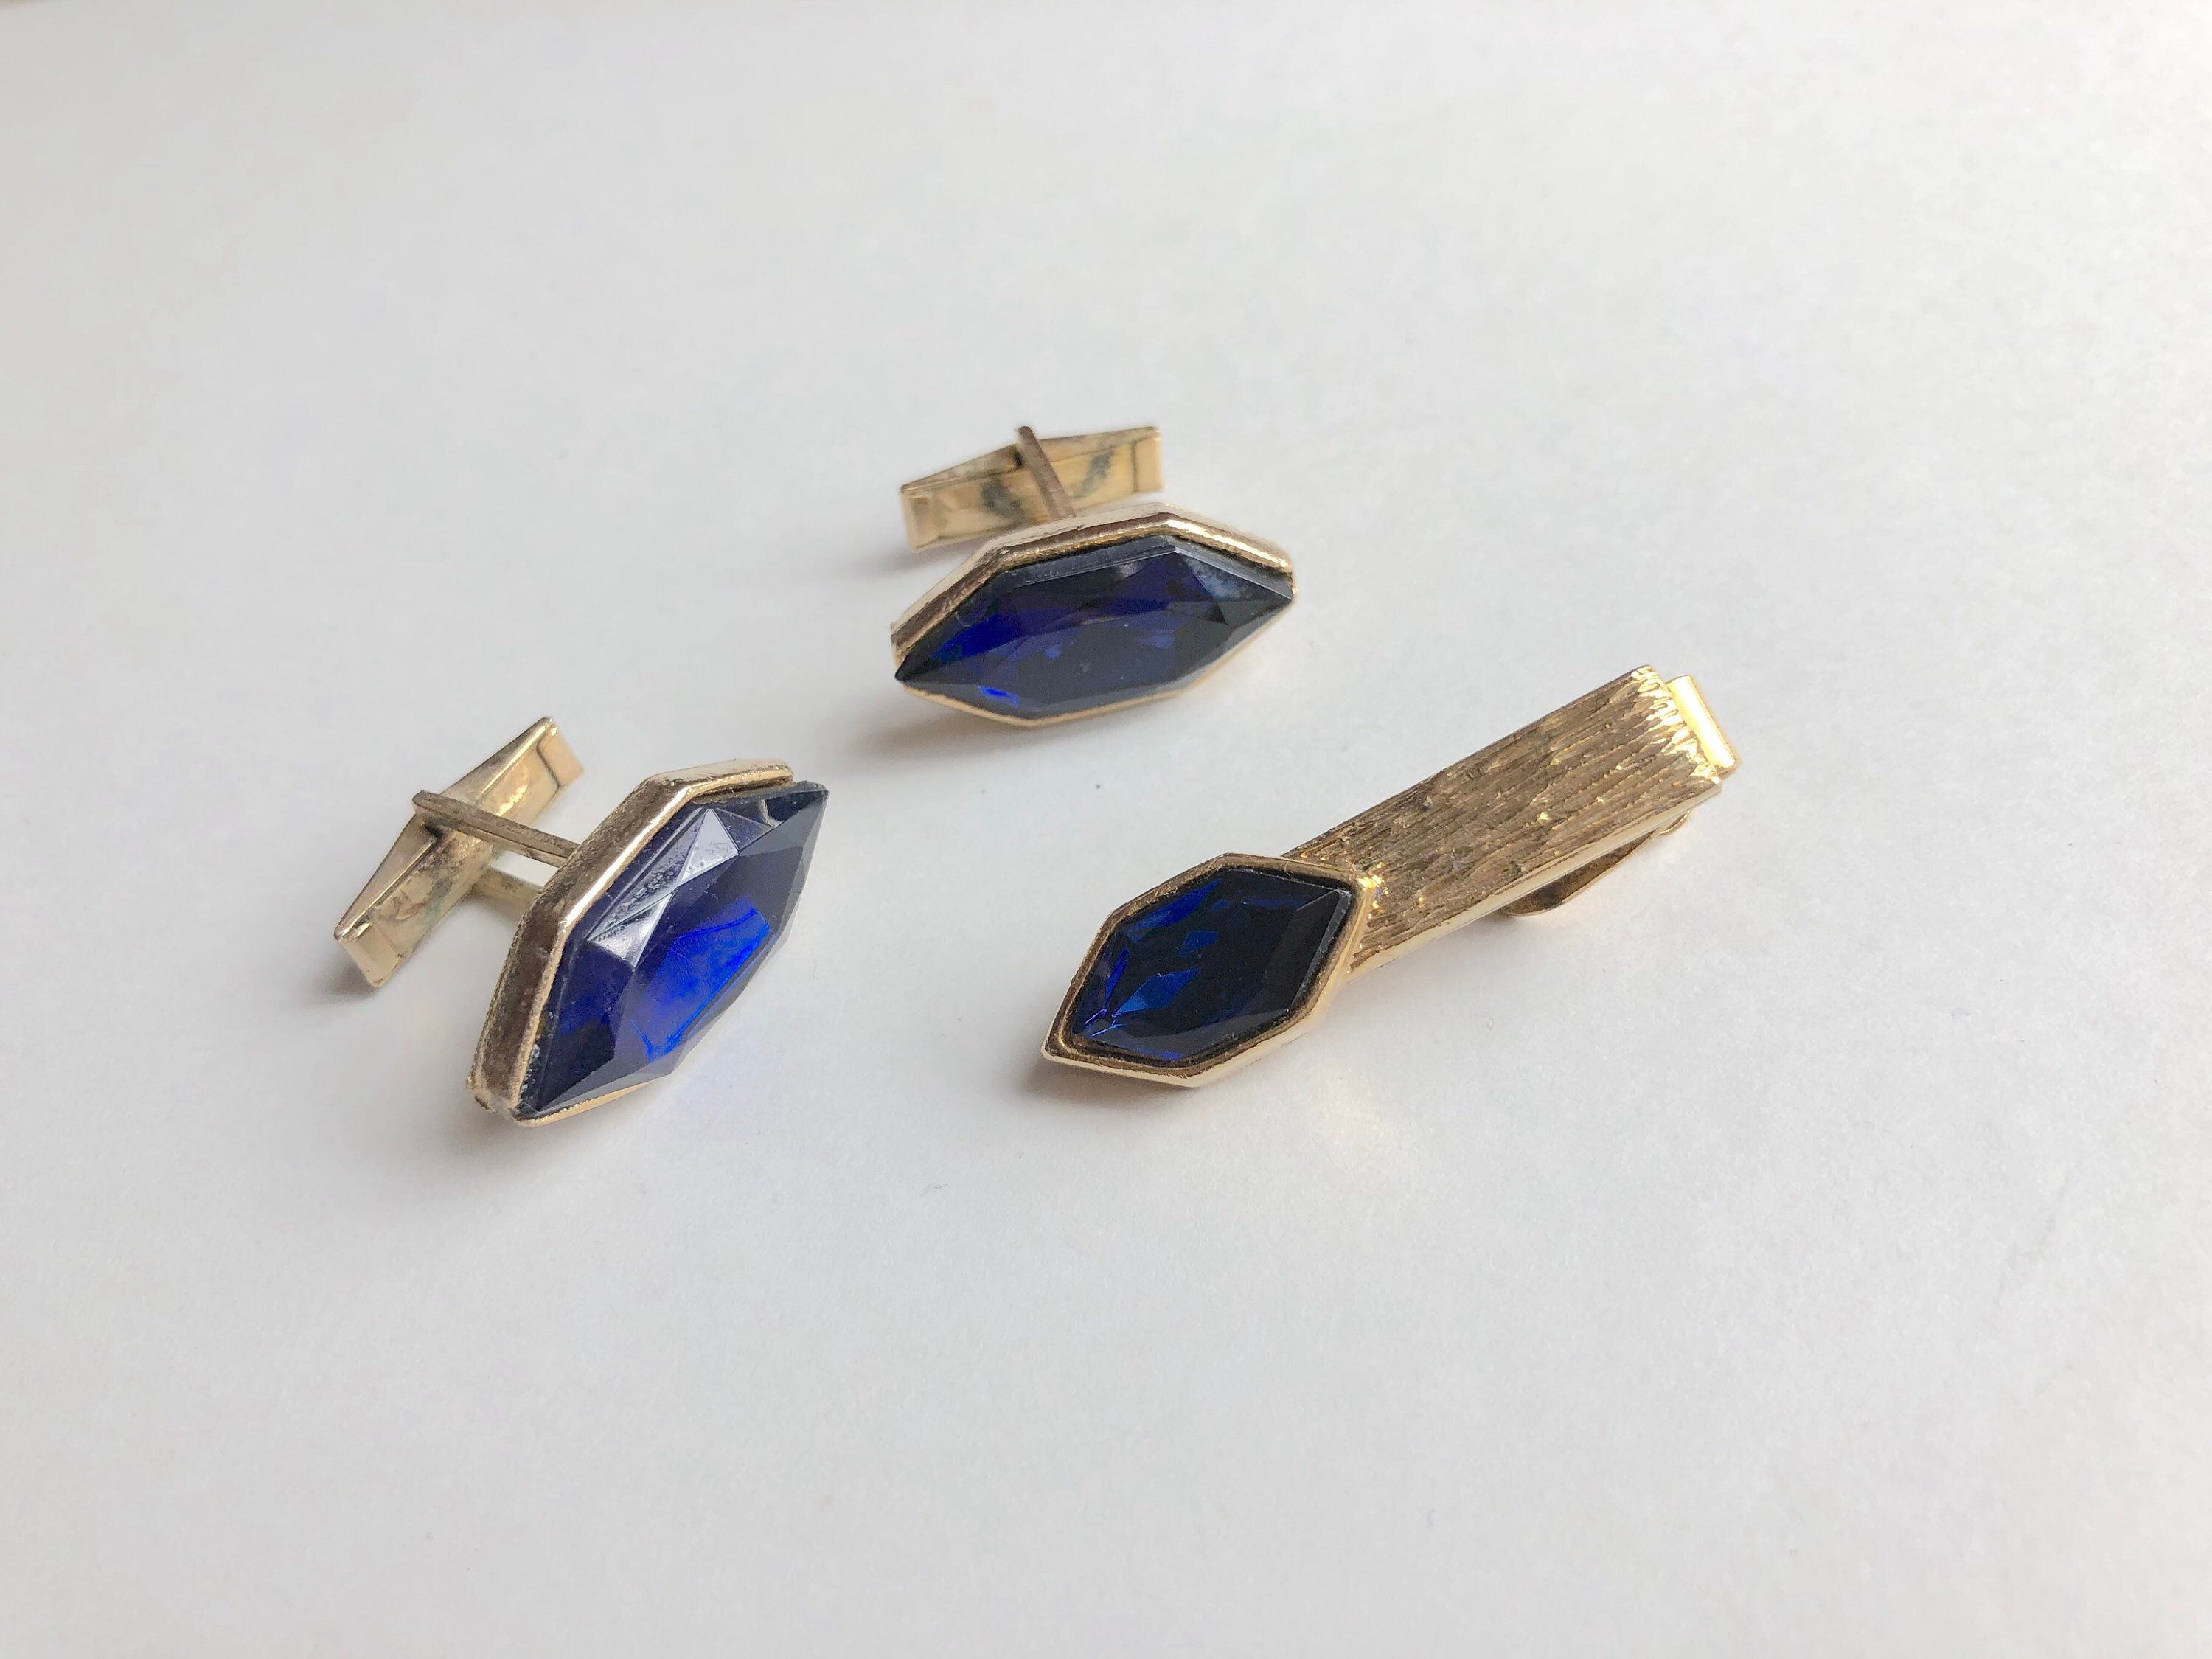 b90dad02a0d3 Excited to share the latest addition to my #etsy shop: Matching Cufflinks  and Tie Clip Vintage Jewelry Navette Rhinestone Royal Blue Sapphire Cuff  Links ...